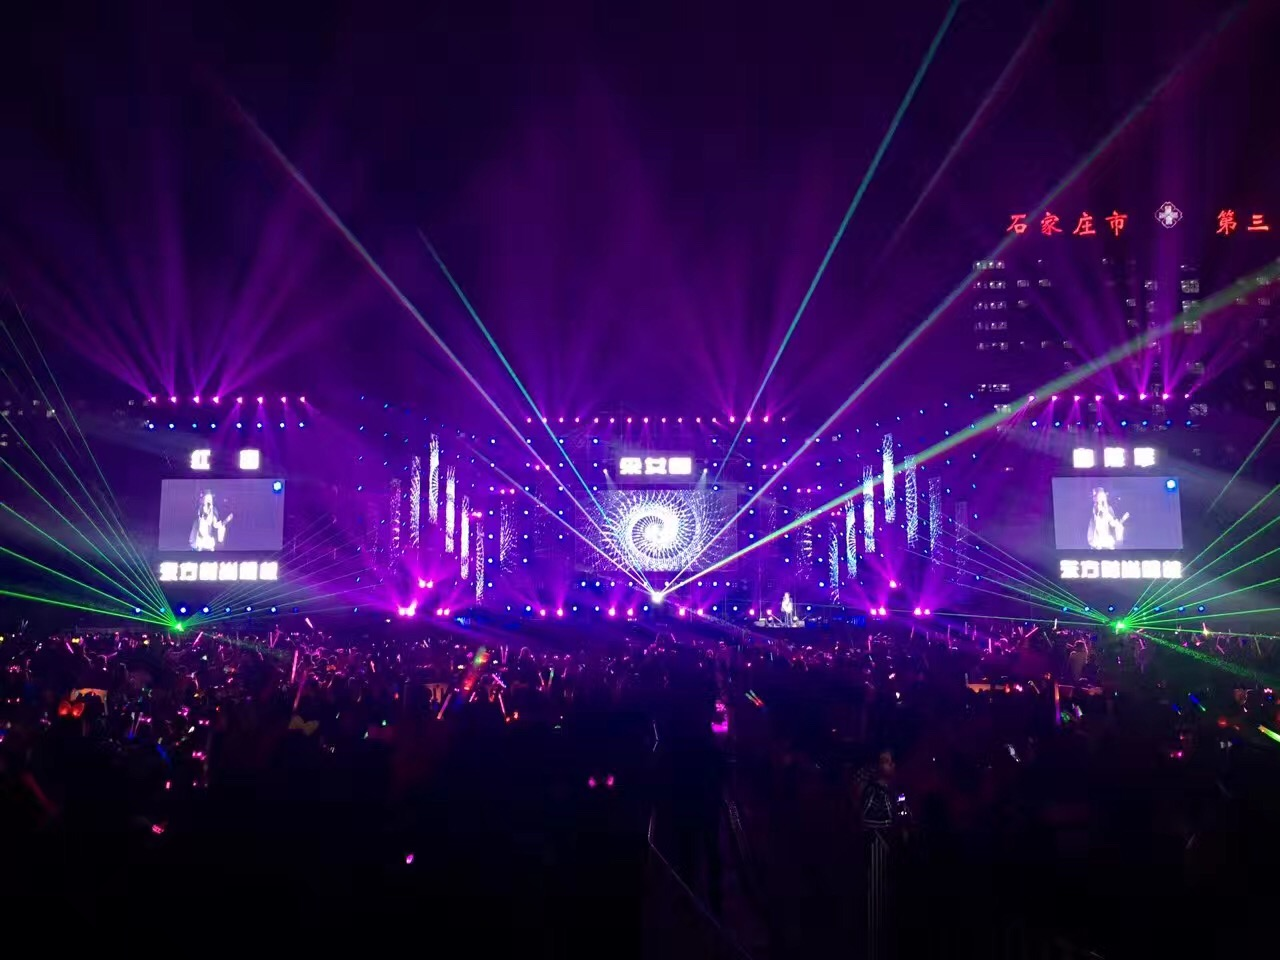 Sapphire Touch controls 'Super Stars Concert' in Shijiazhuang, China